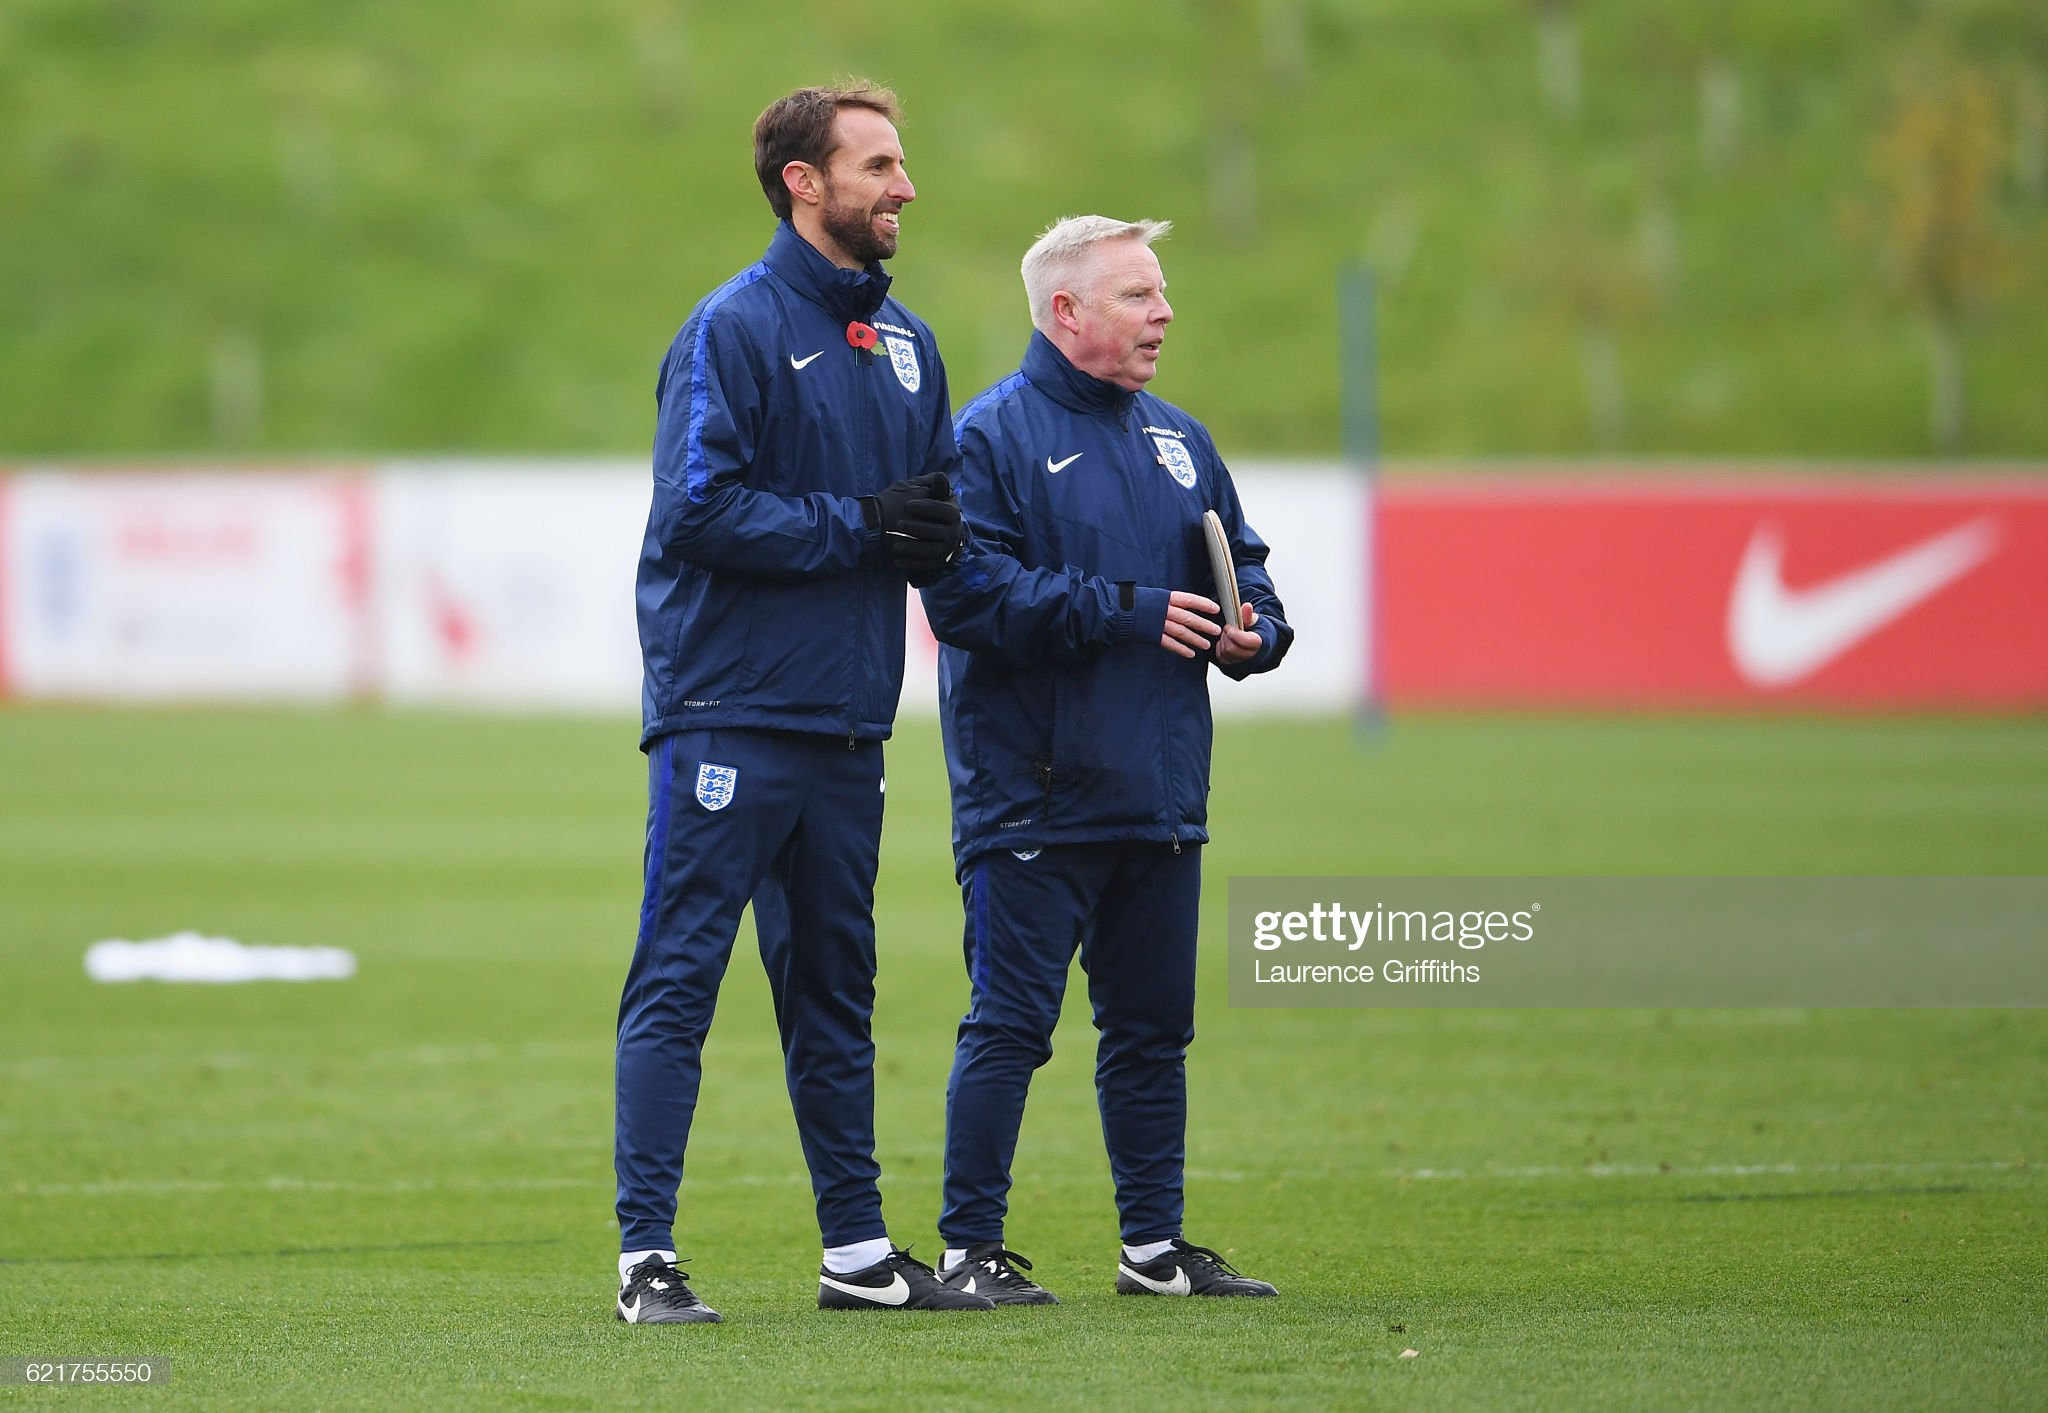 ¿Cuánto mide Sammy Lee? - Real height Gareth-southgate-interim-manager-of-england-and-sammy-lee-assistant-picture-id621755550?s=2048x2048